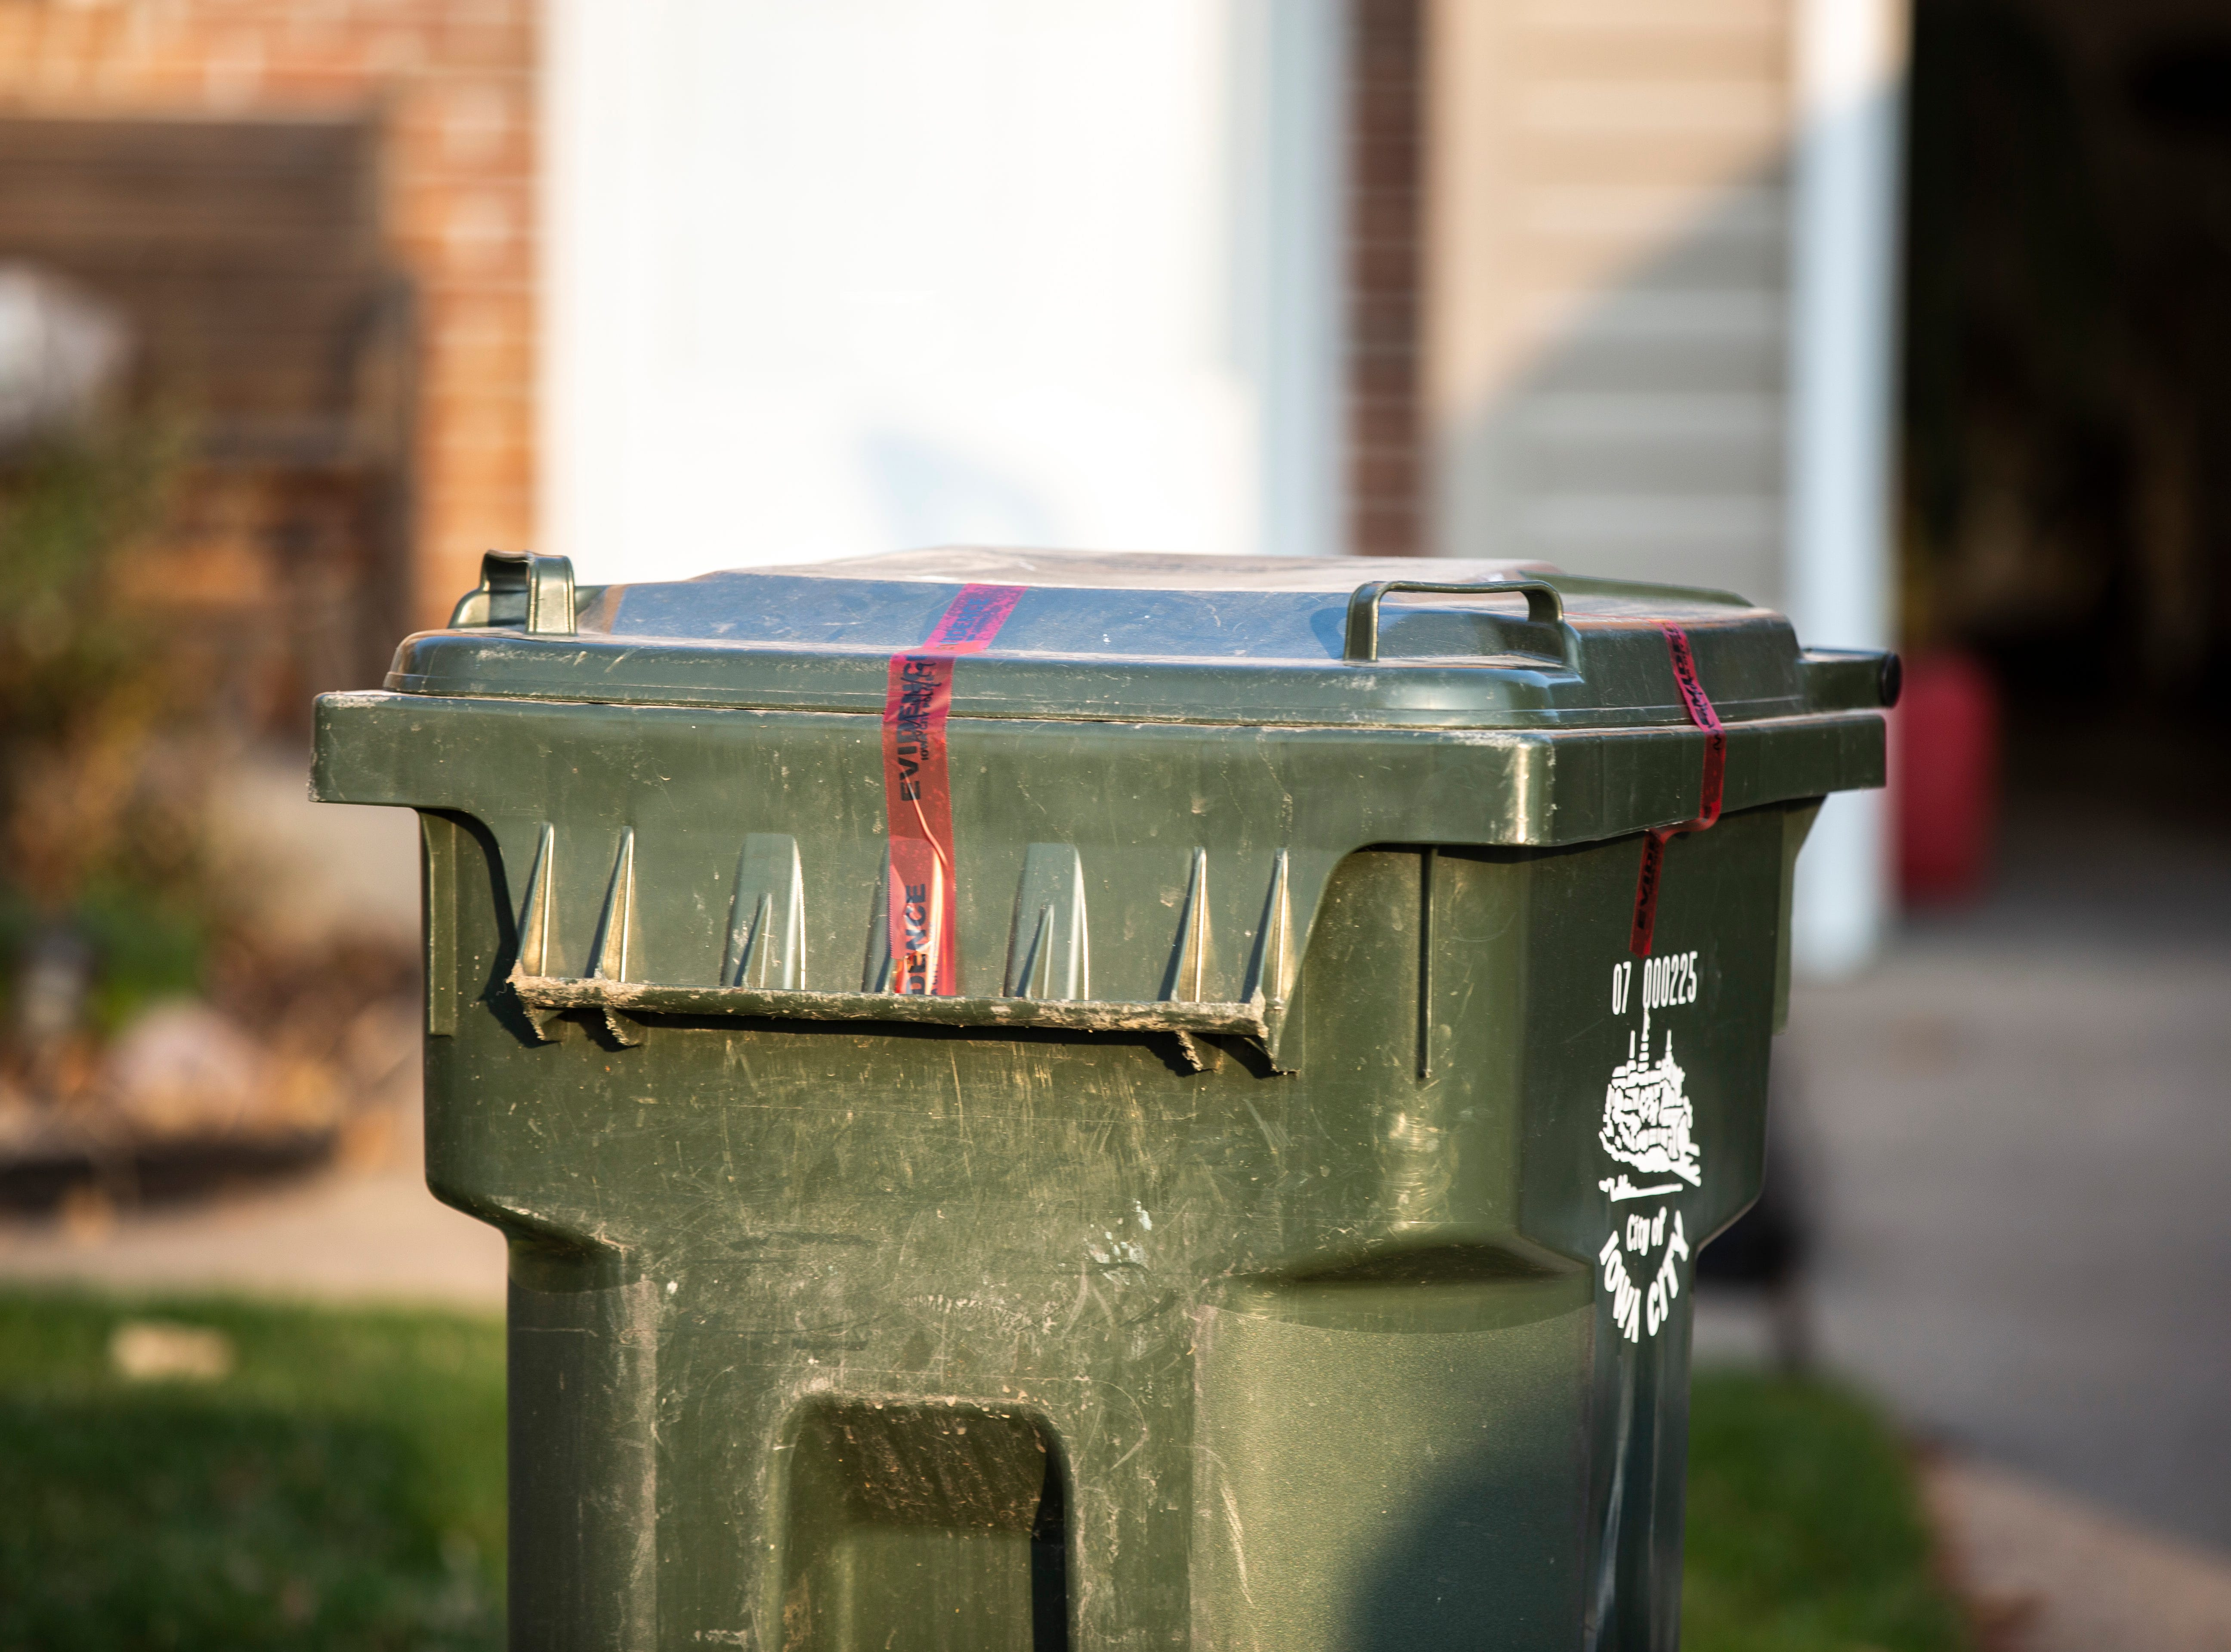 A garbage can is sealed with evidence tape while police investigators respond to a scene of a suspicious death on Friday, April 5, 2019, at 114 Green Mountain Drive in Iowa City, Iowa.